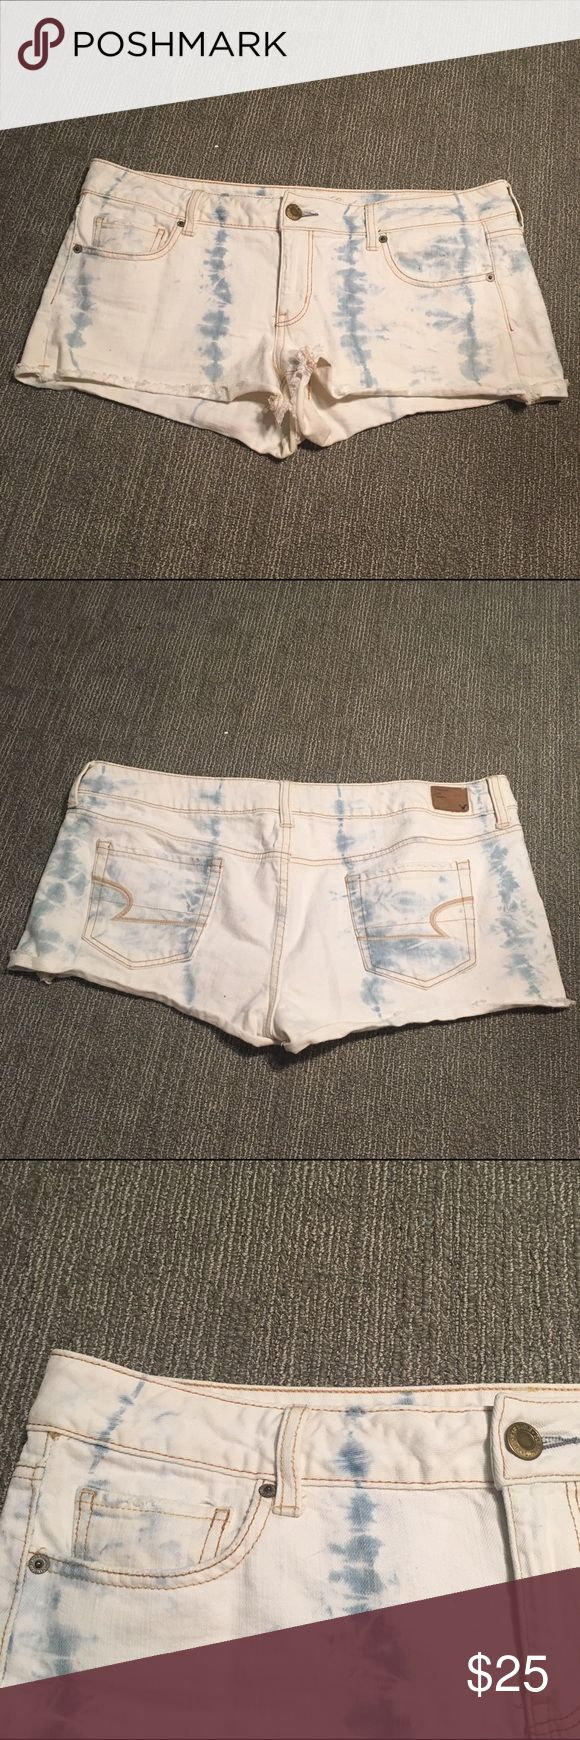 American Eagle Tie Dye Cutoff Jean Shorts American Eagle Tie Dye Cutoff Jean Shorts. Size 14. Wore them under 10 times. Love them but they don't fit in with my business wardrobe. No stains or rips. American Eagle Outfitters Shorts Jean Shorts